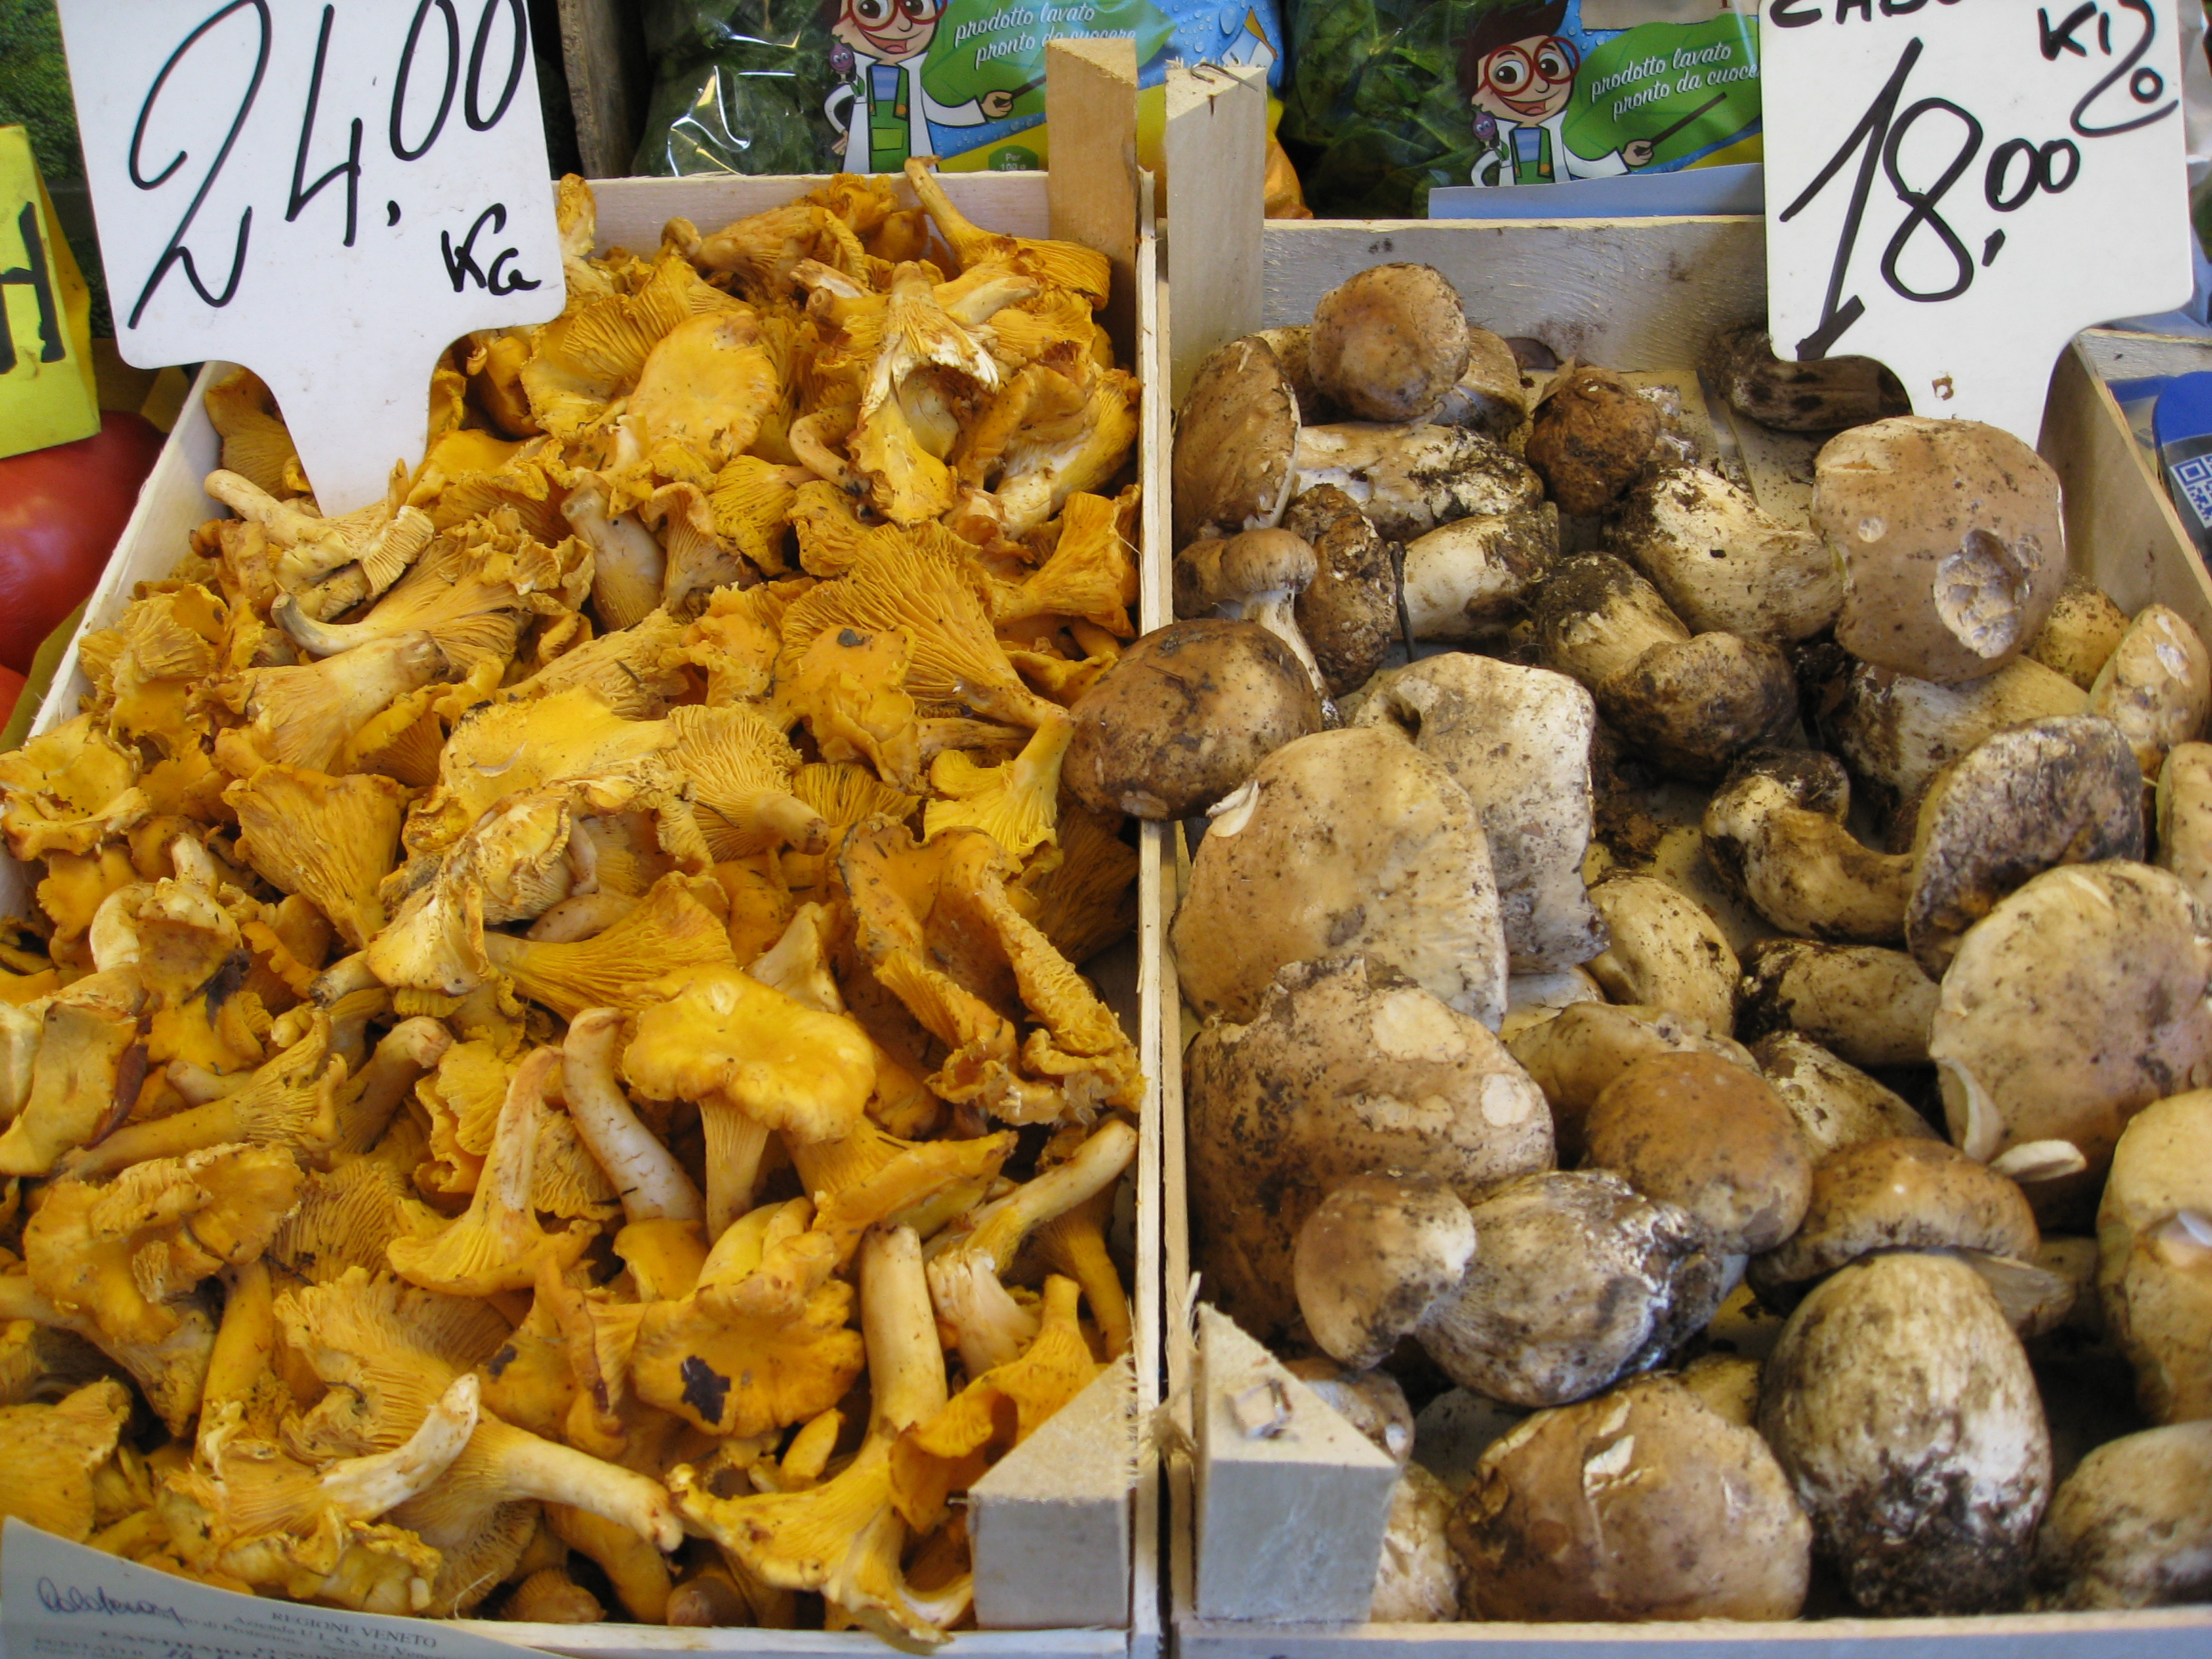 Mushroom were available everywhere. The Chianti region is famous for their porcini mushrooms. Practically every dish was flavored to perfection with them.